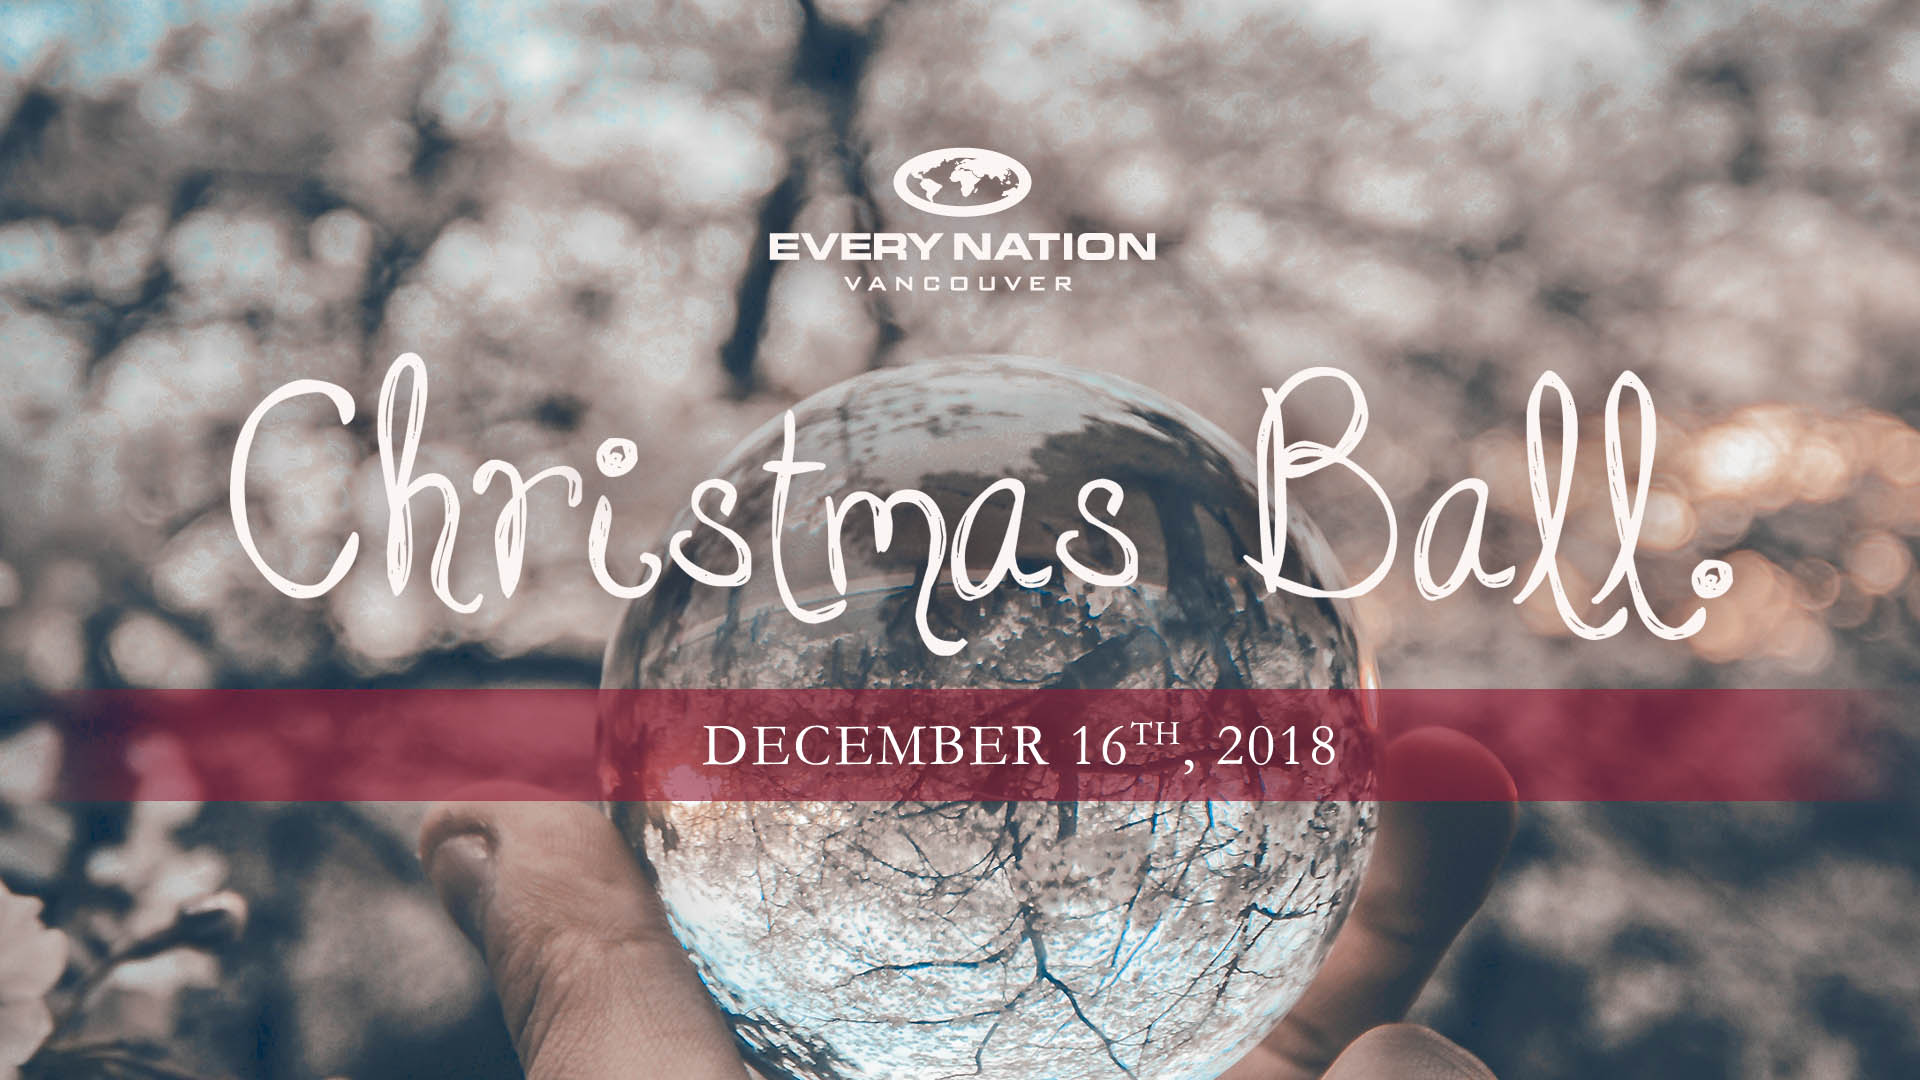 The ENV Christmas Ball logo